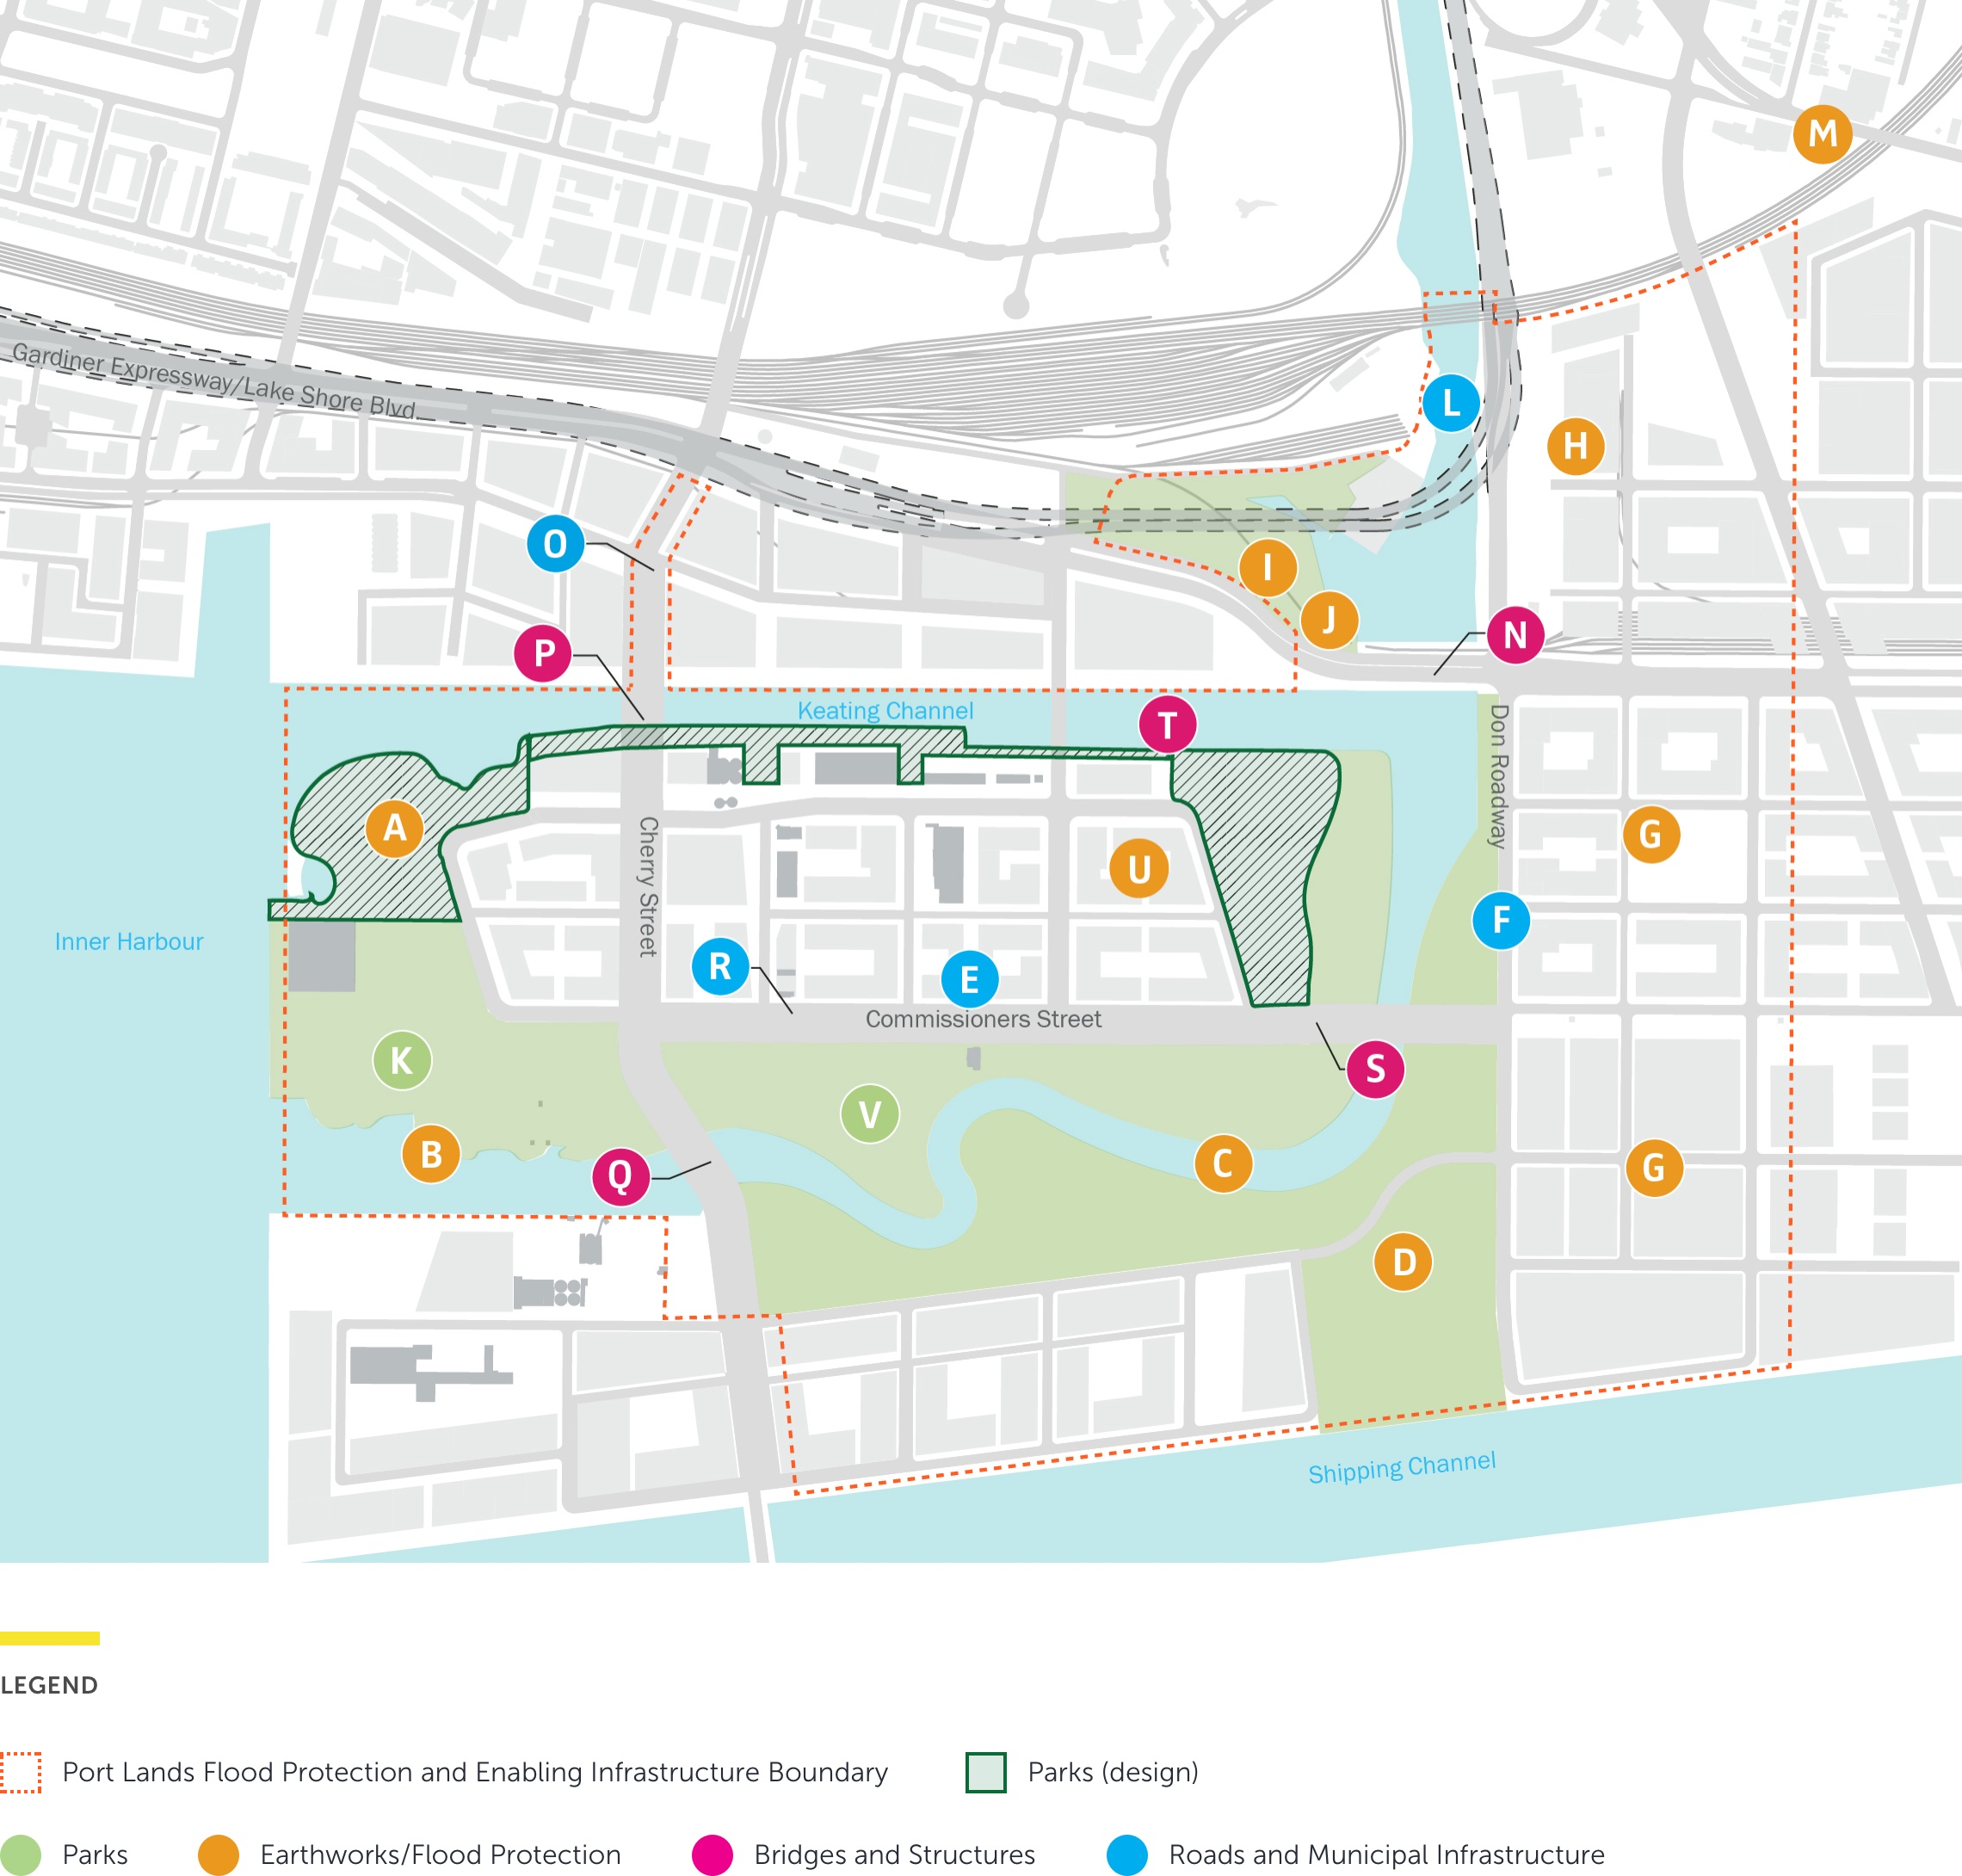 A schematic showing multiple project components within the project boundary in the Port Lands